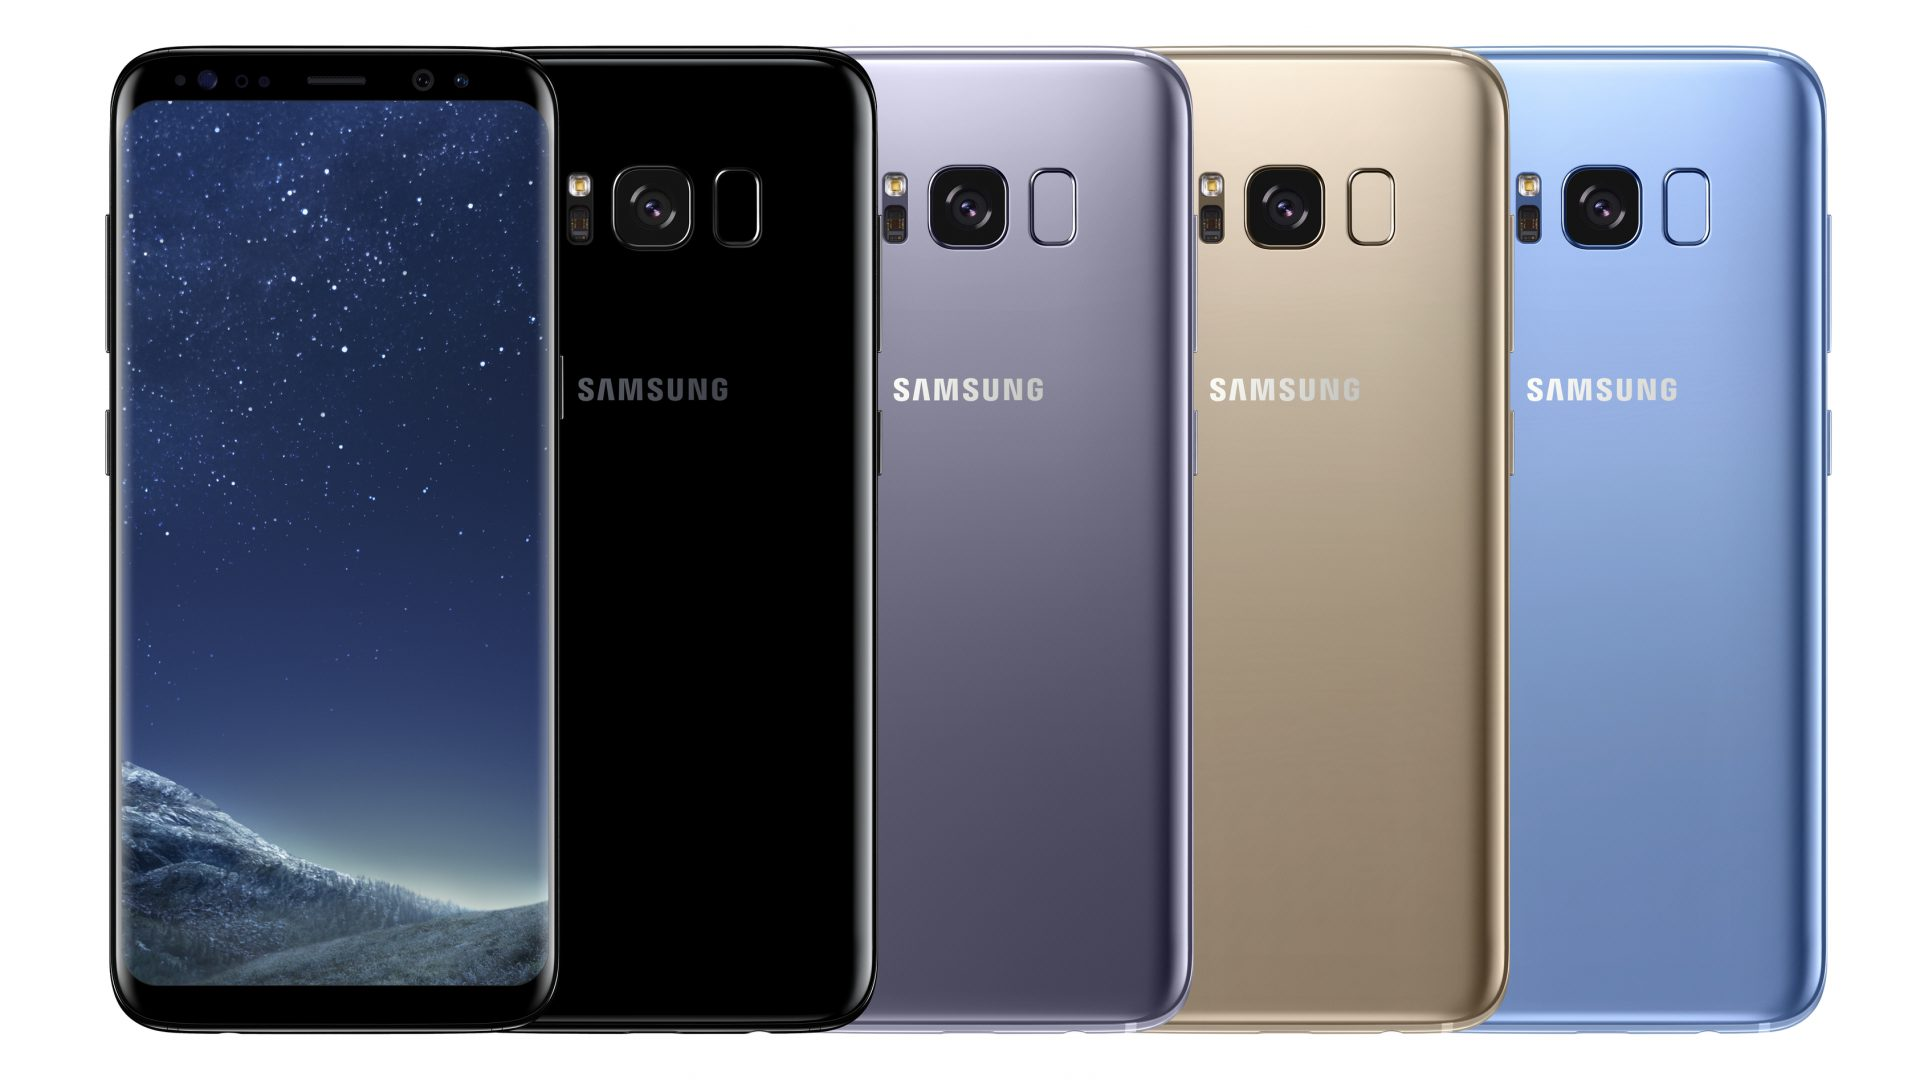 Samsung Adds The Coral Blue S8 And S8 To The Lineup In